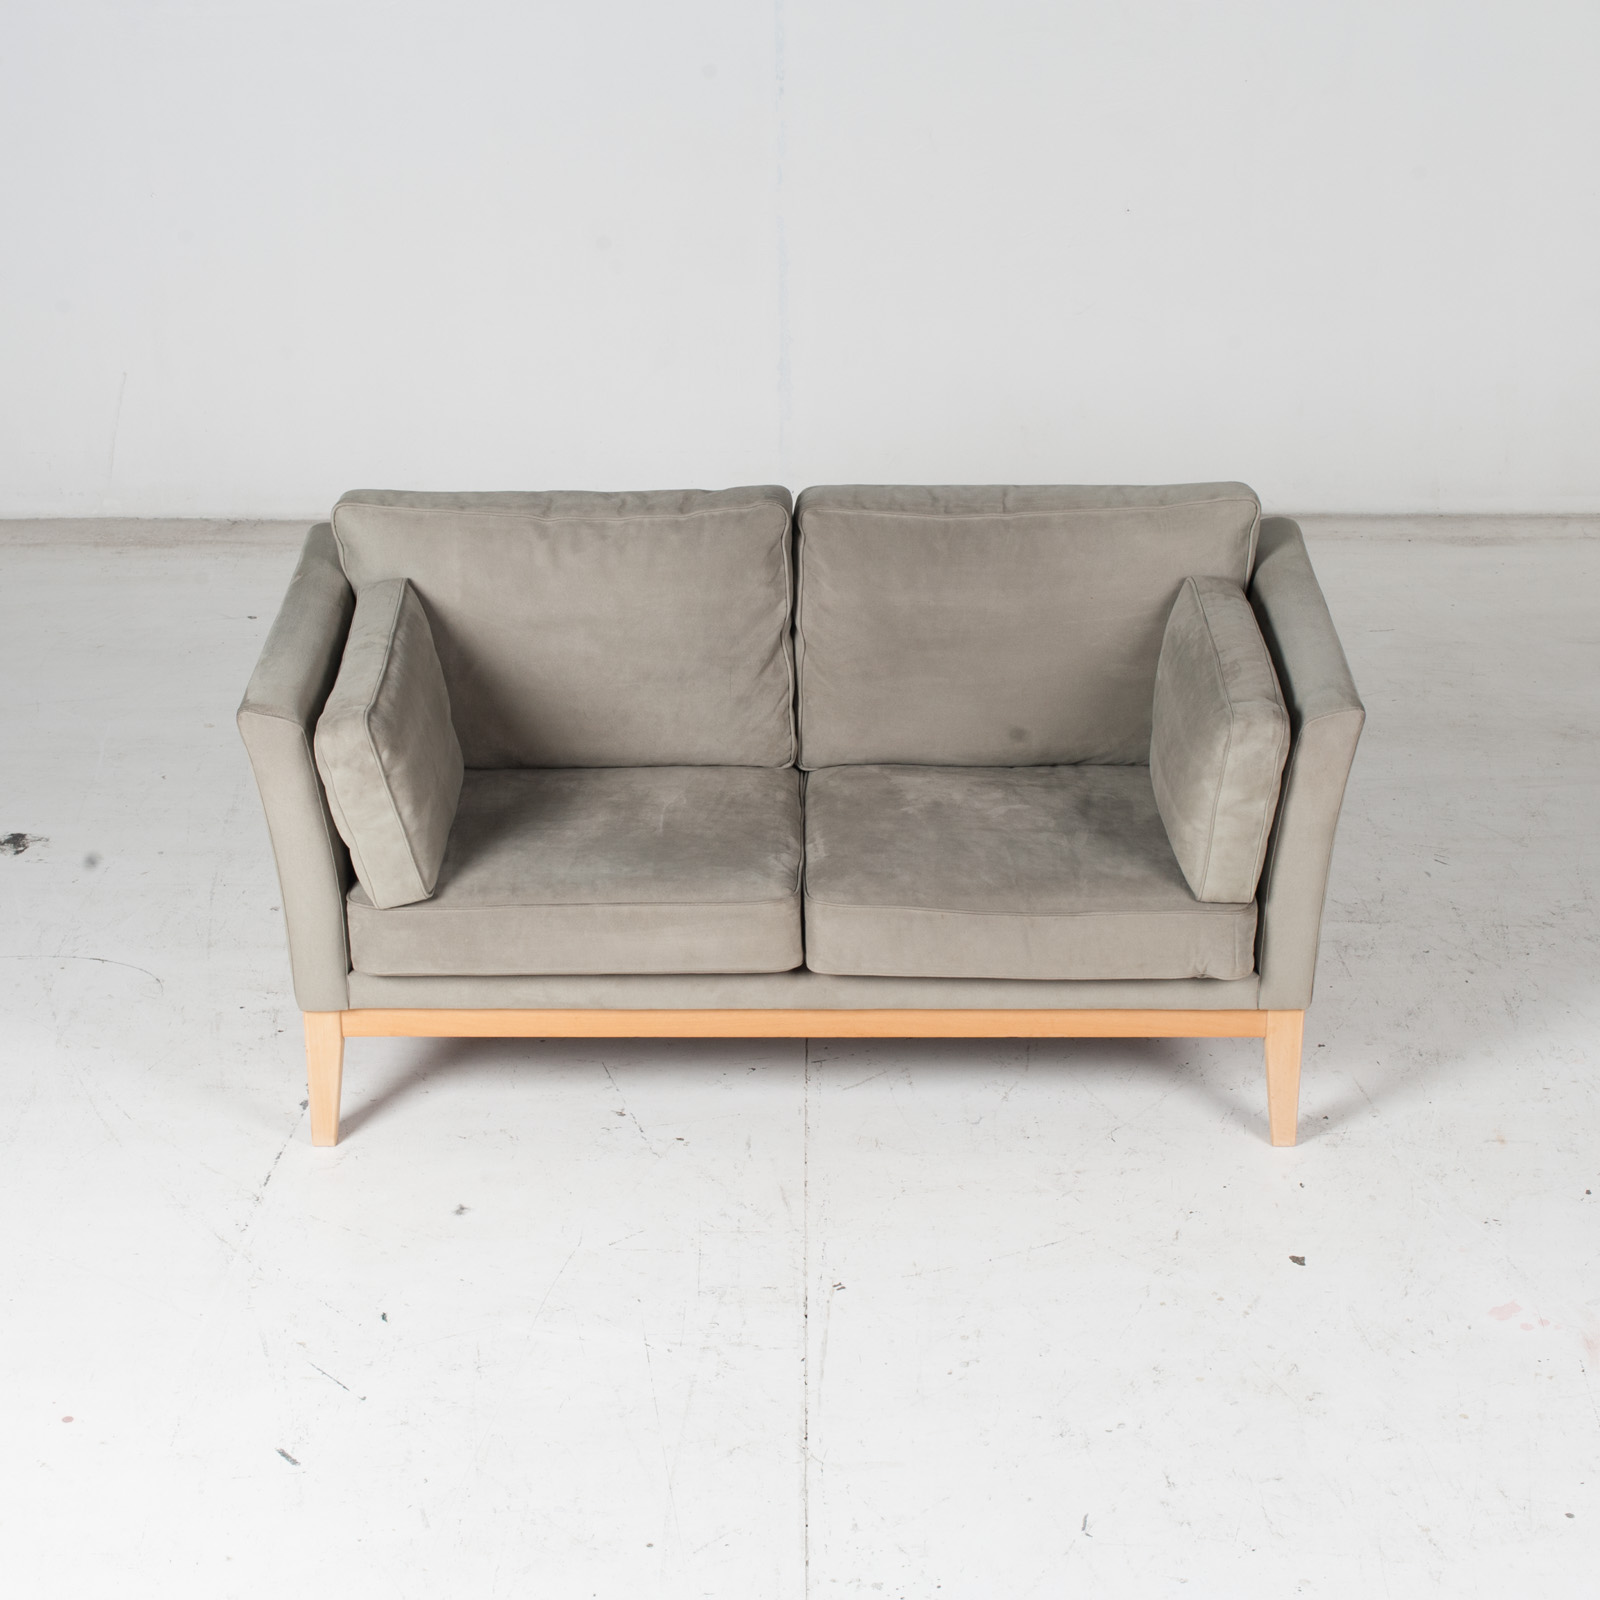 2 Seat Sofa By Stouby In Grey Macro Suede, 1960s, Denmark3